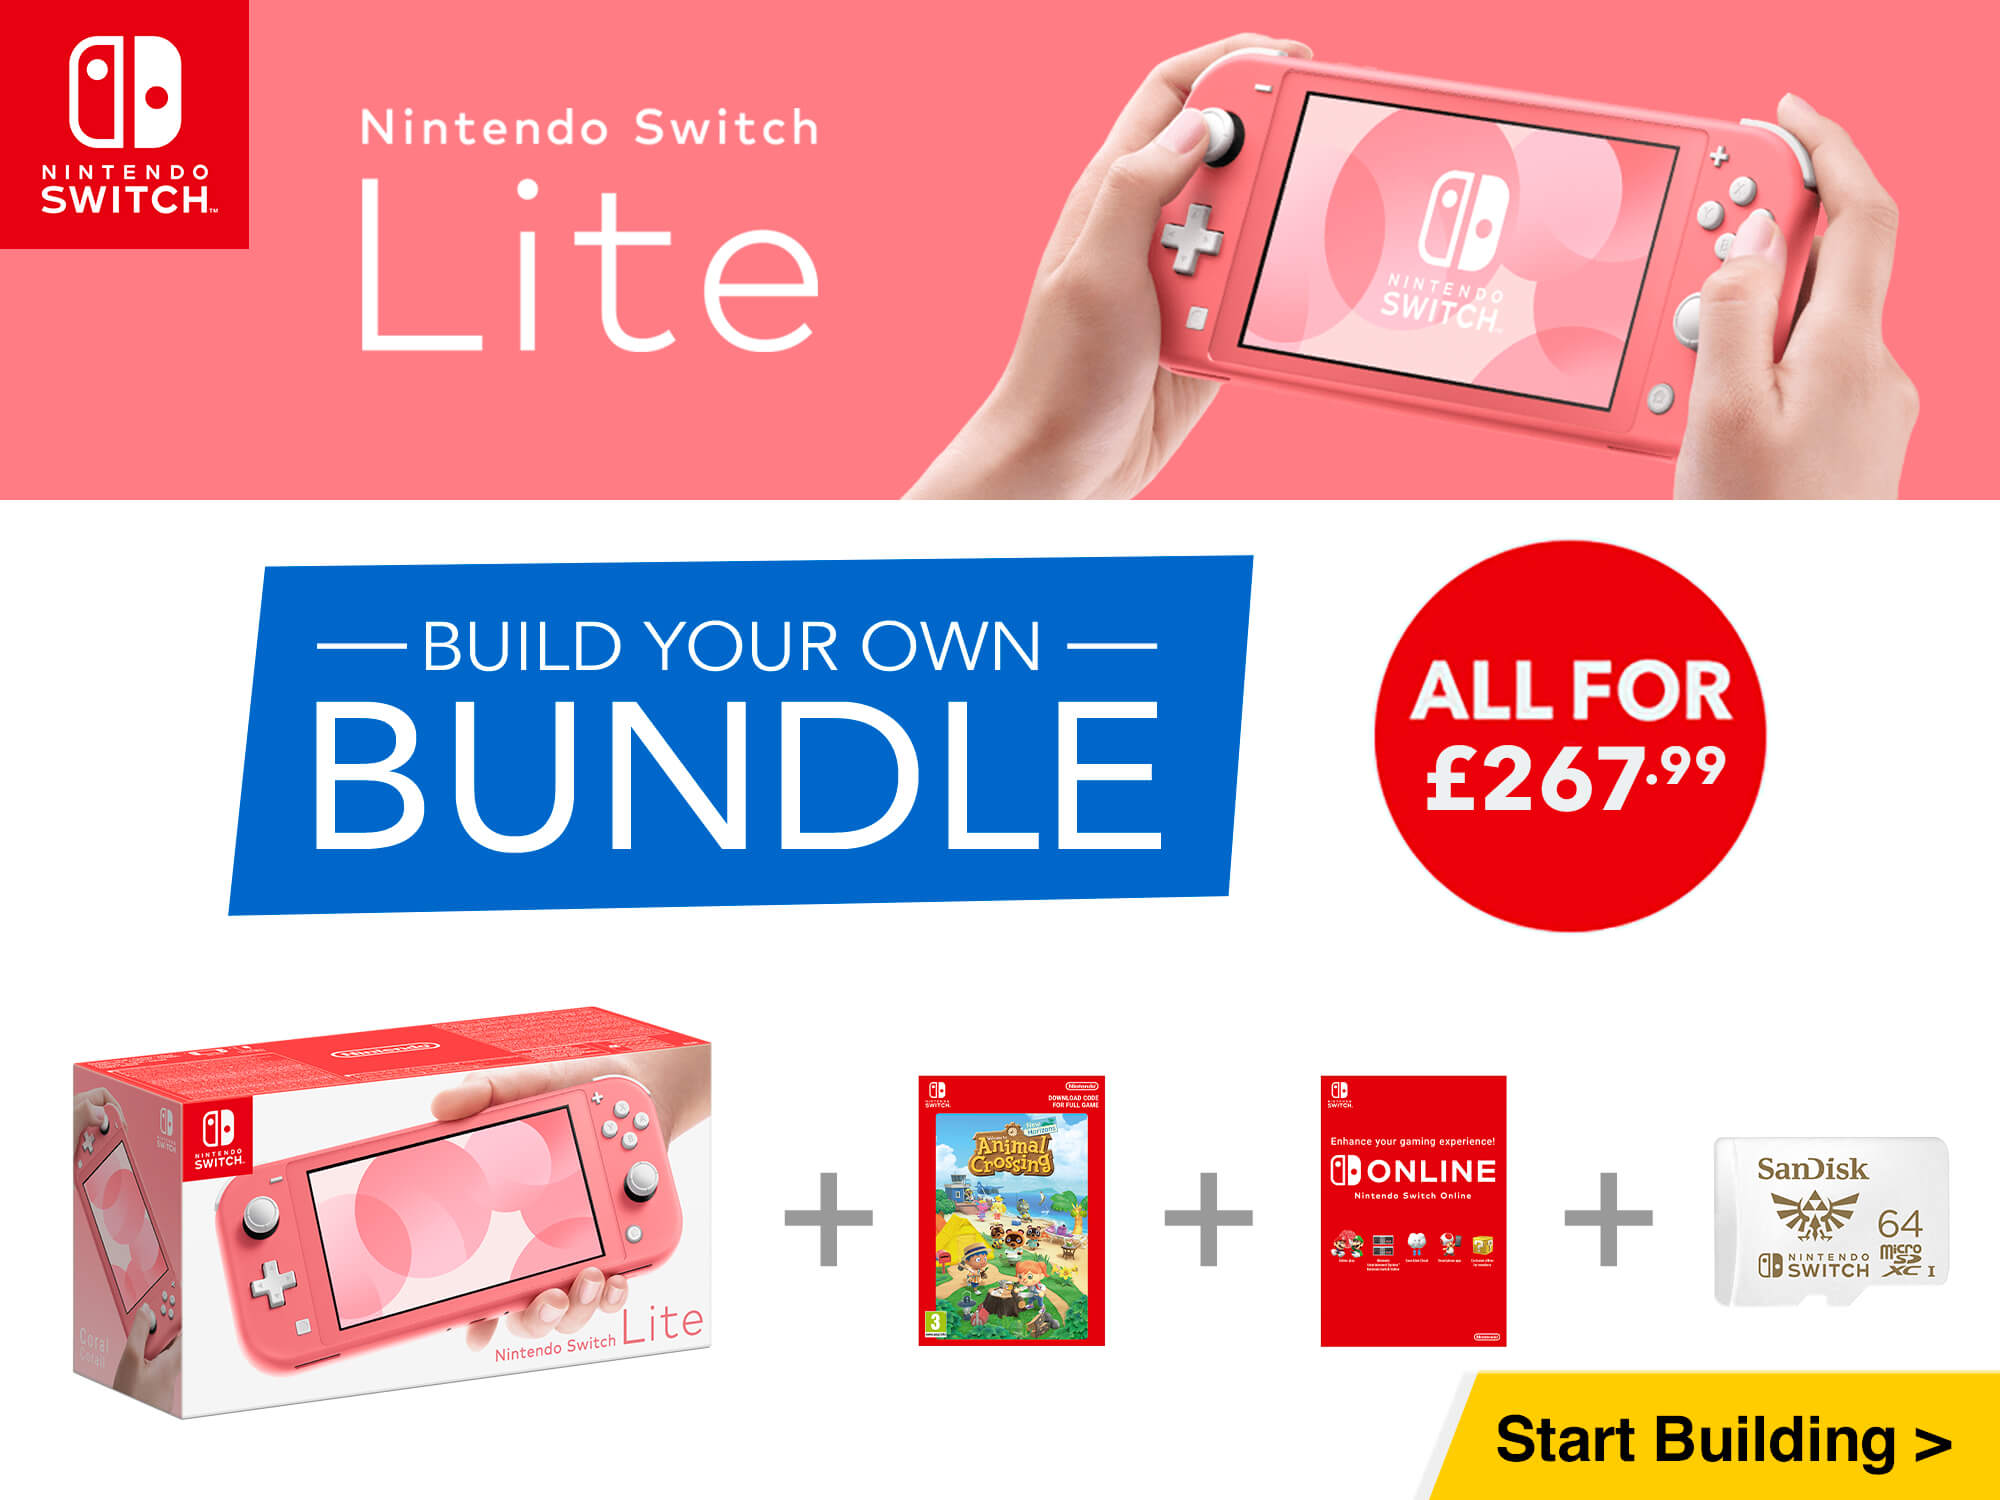 Build your own Nintendo Switch Lite bundle for only £267.99 - Console + Game + Nintendo Switch Online + Accessory